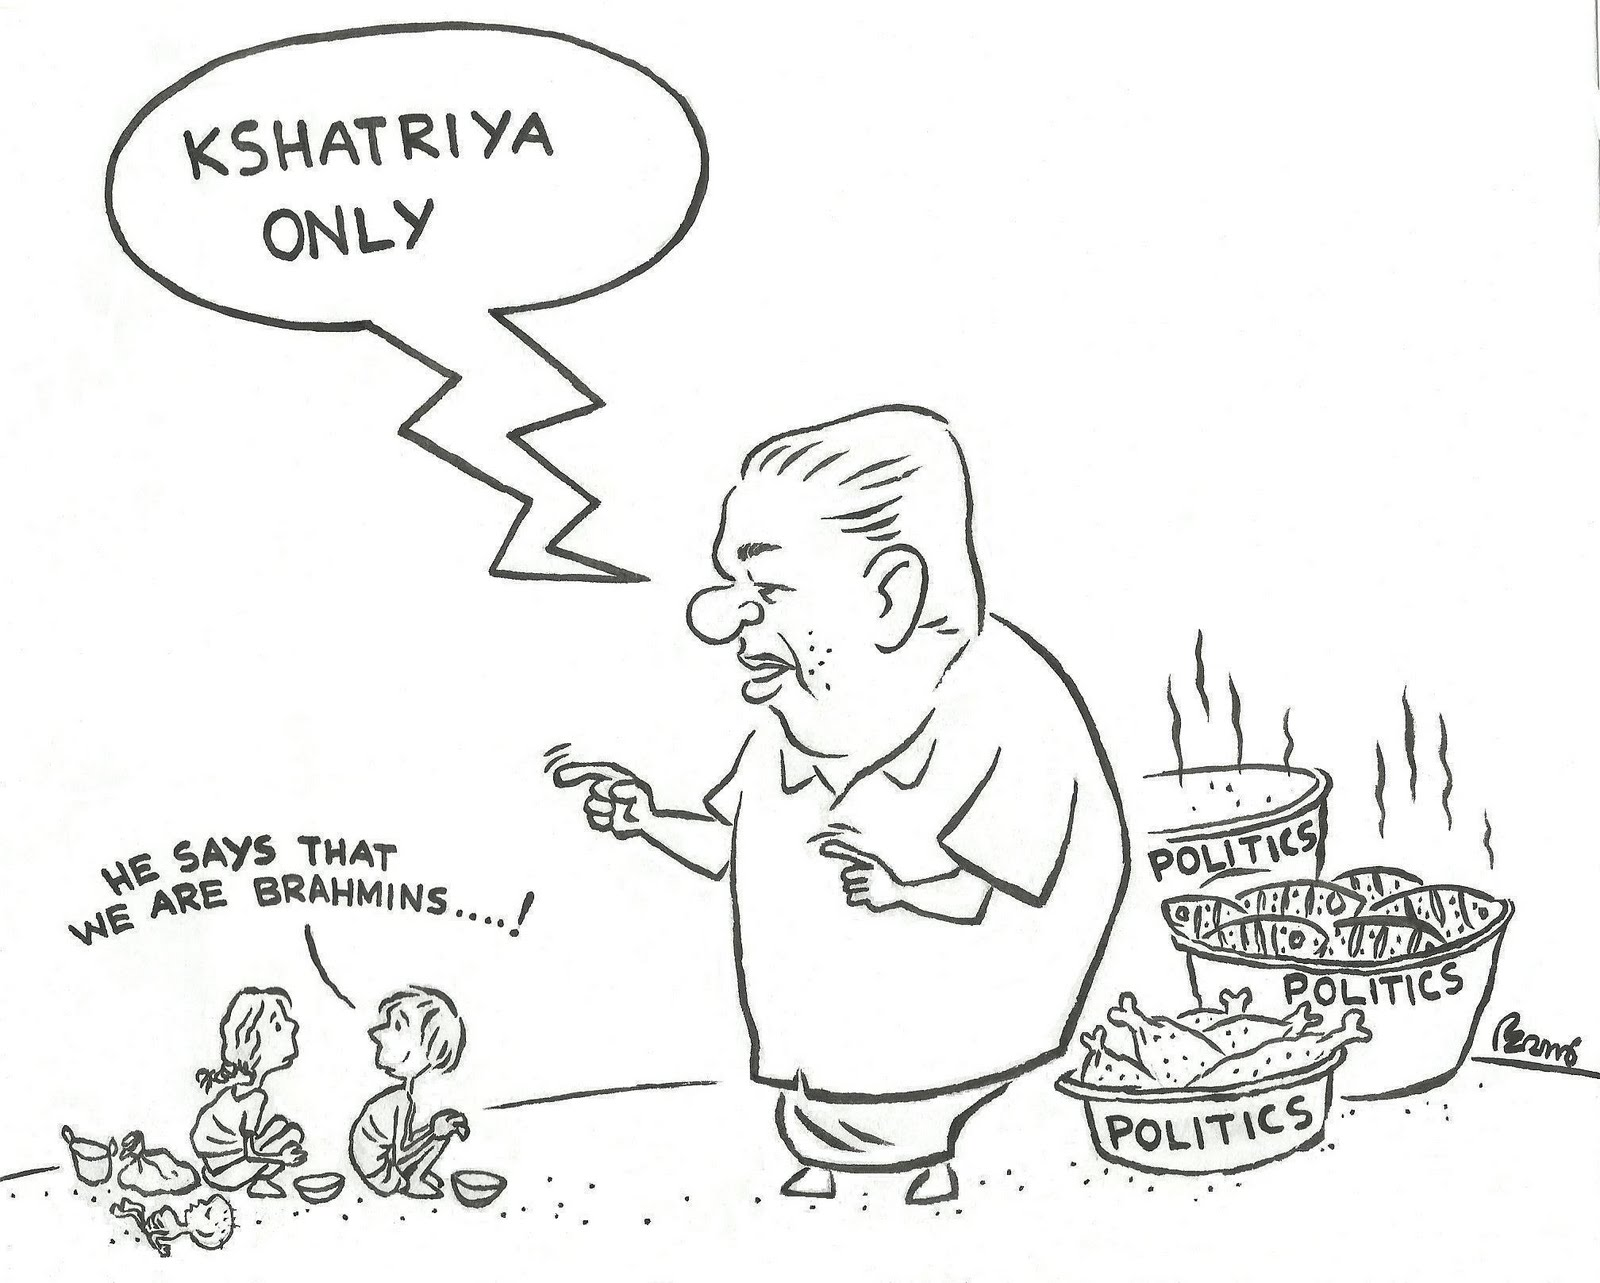 cartoonist bhuvanan